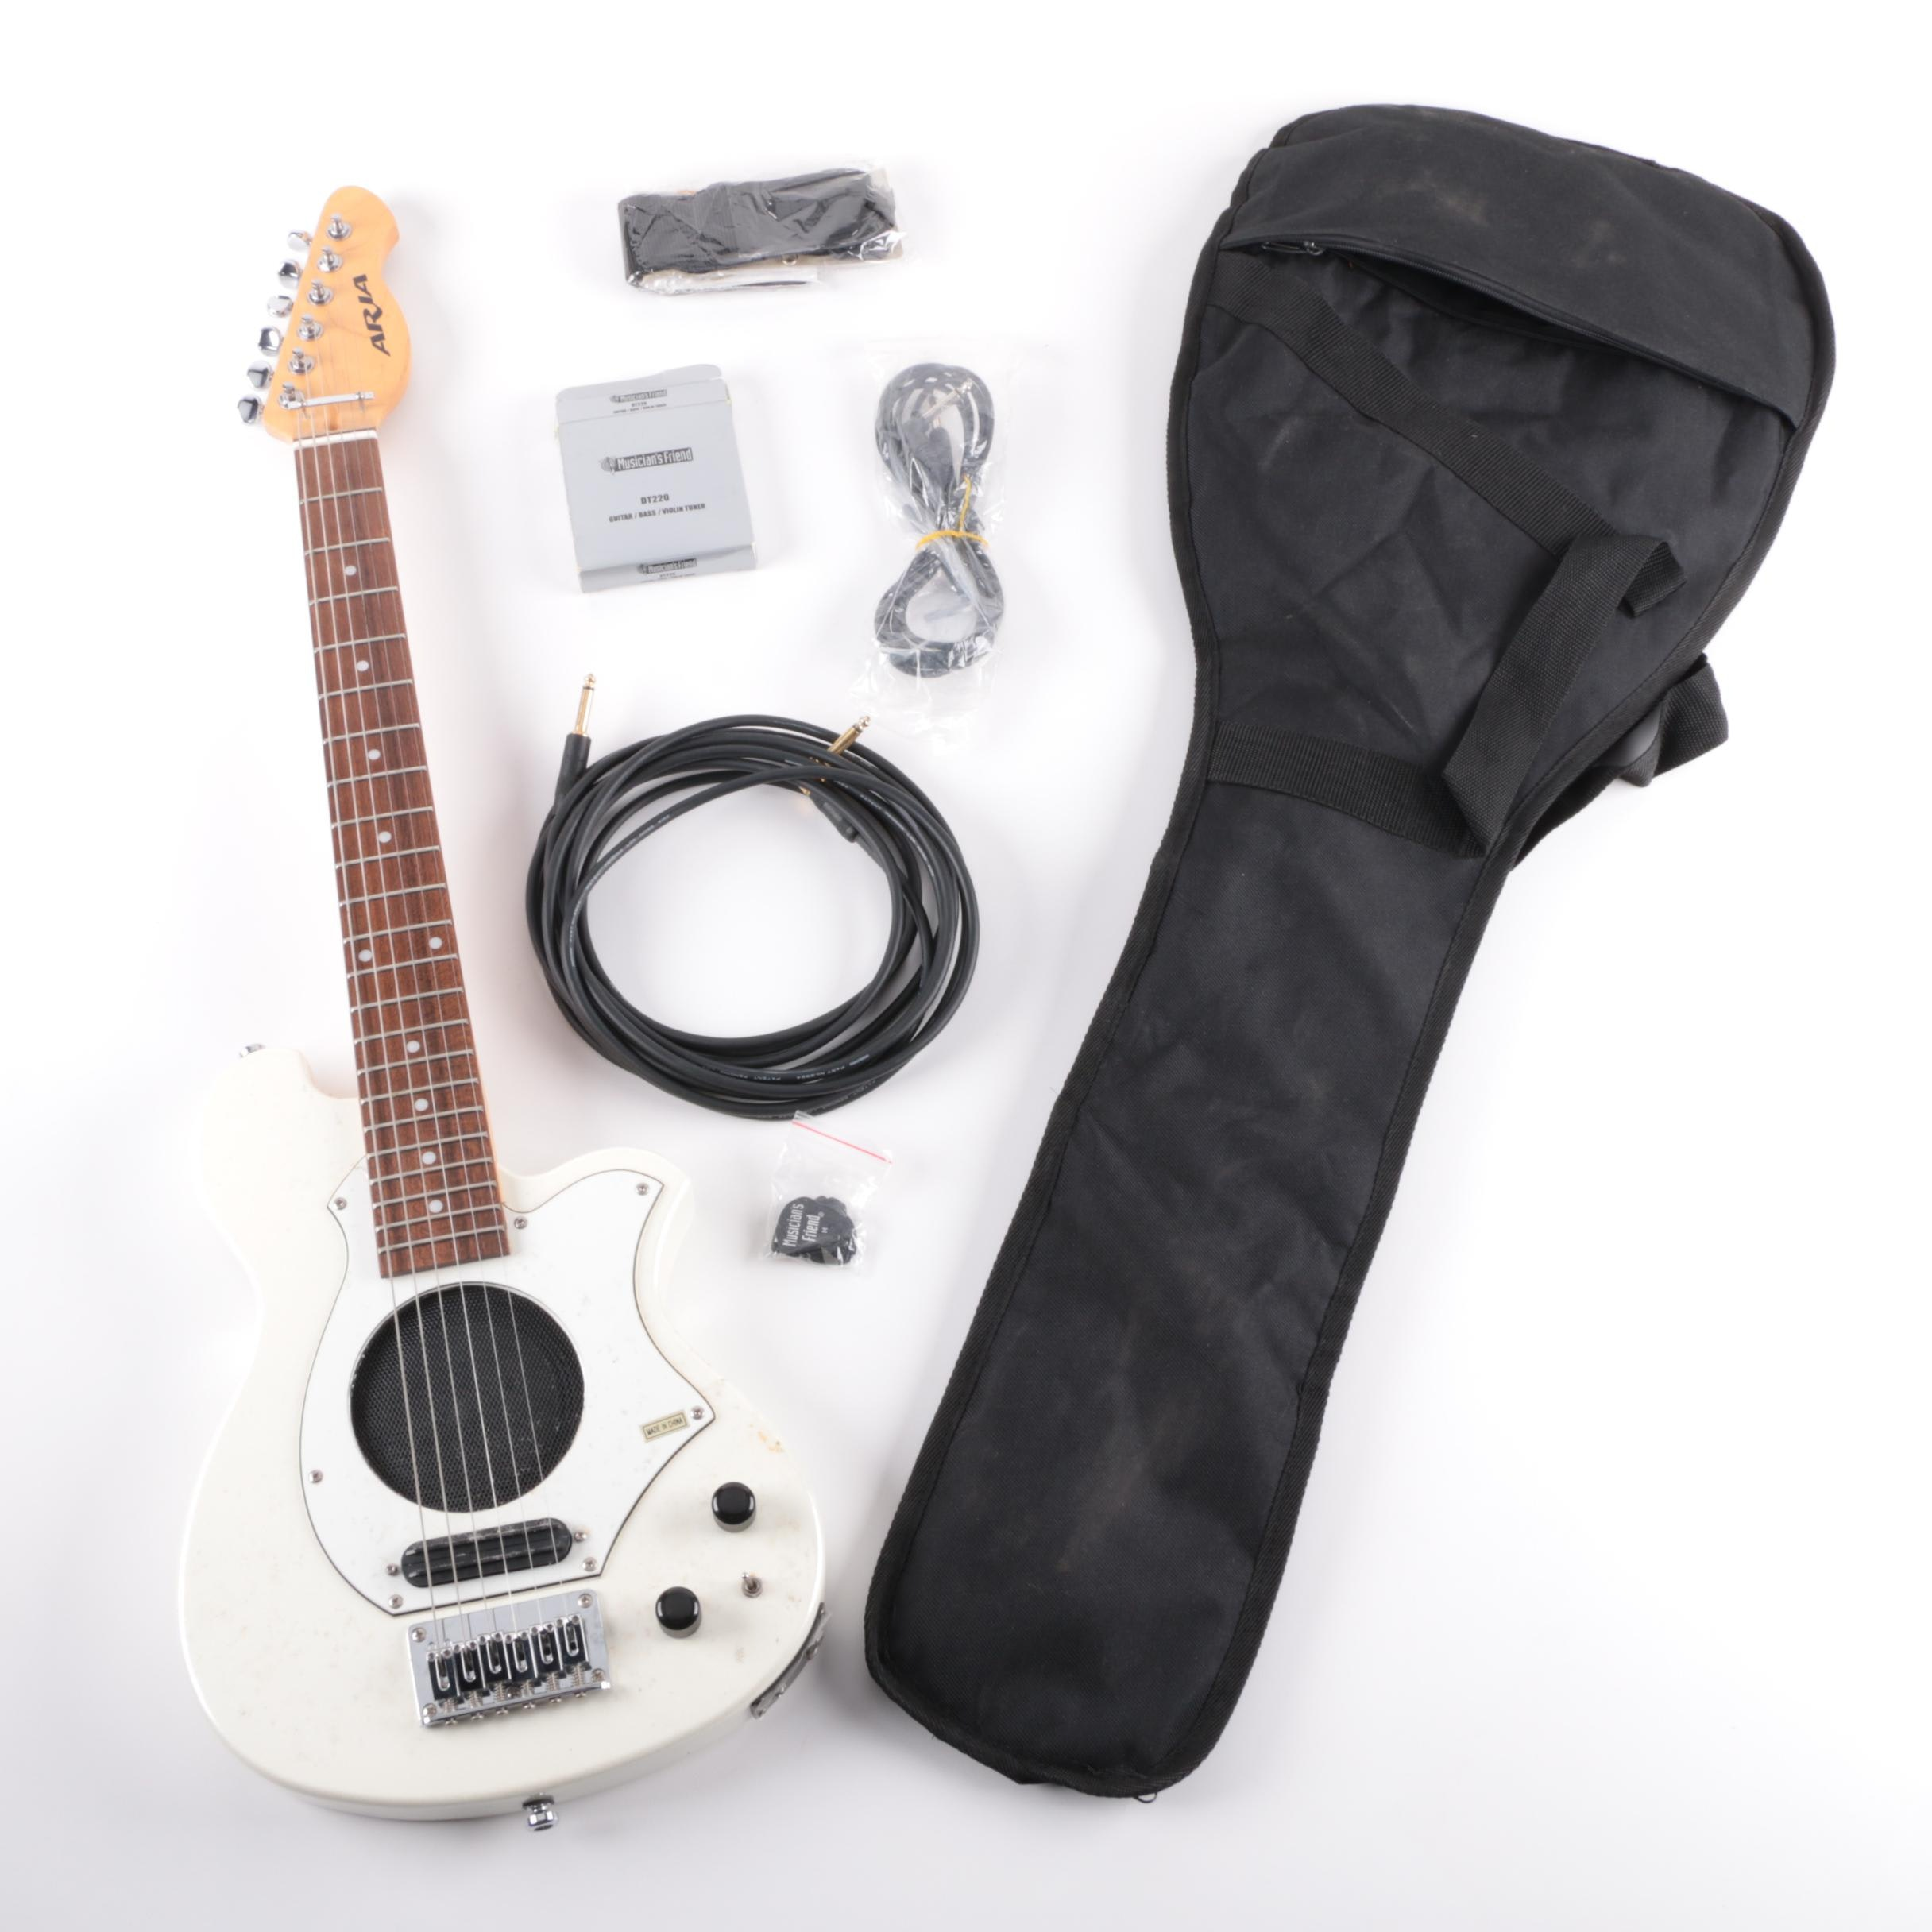 Aria Built-In Speaker Electric Guitar With Gig Bag, Tuner and Mogami Cable